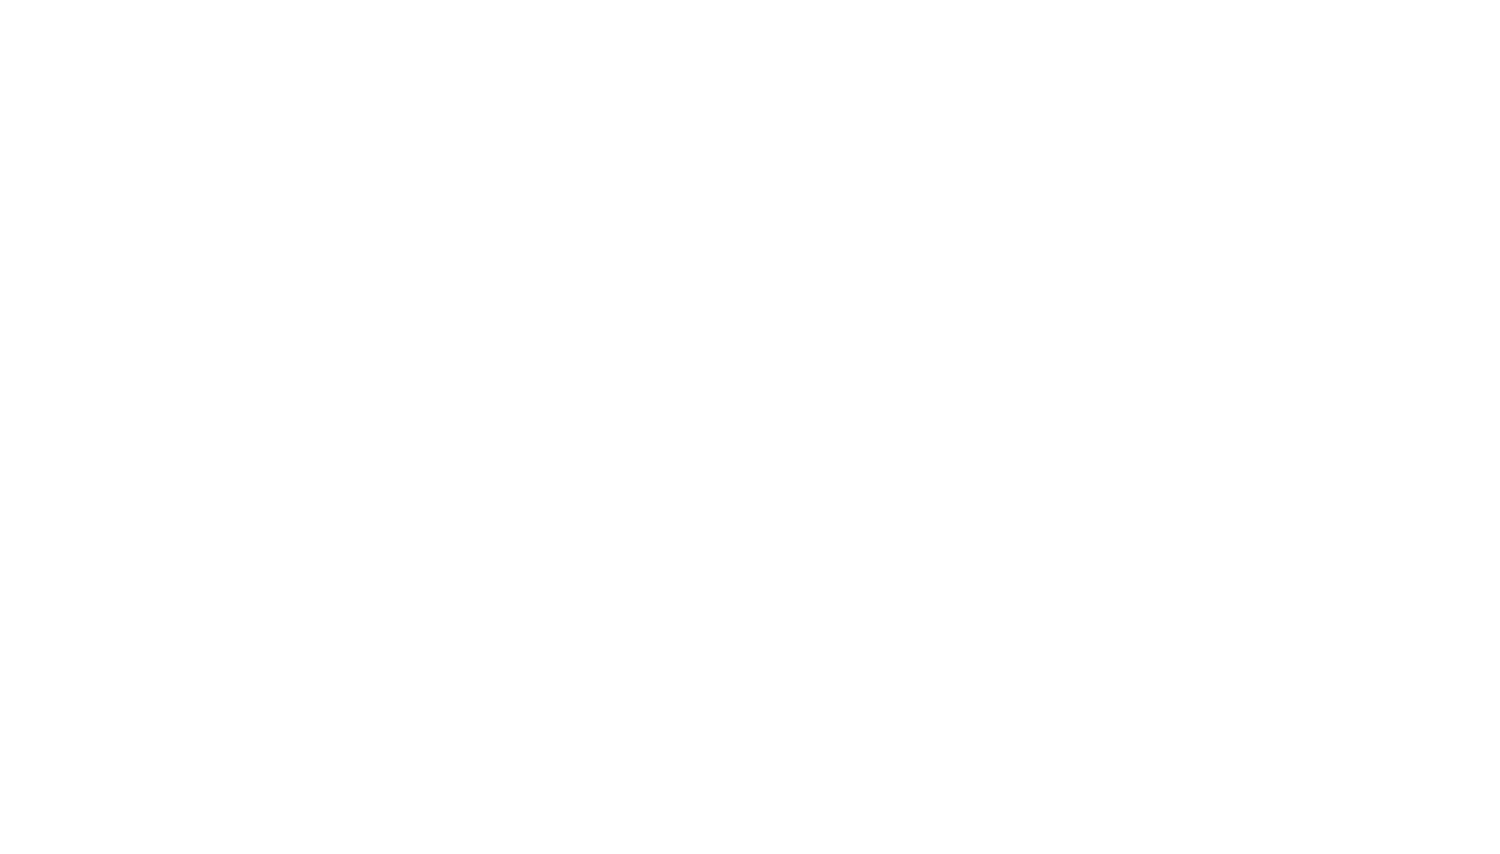 Underwater Earth Limited